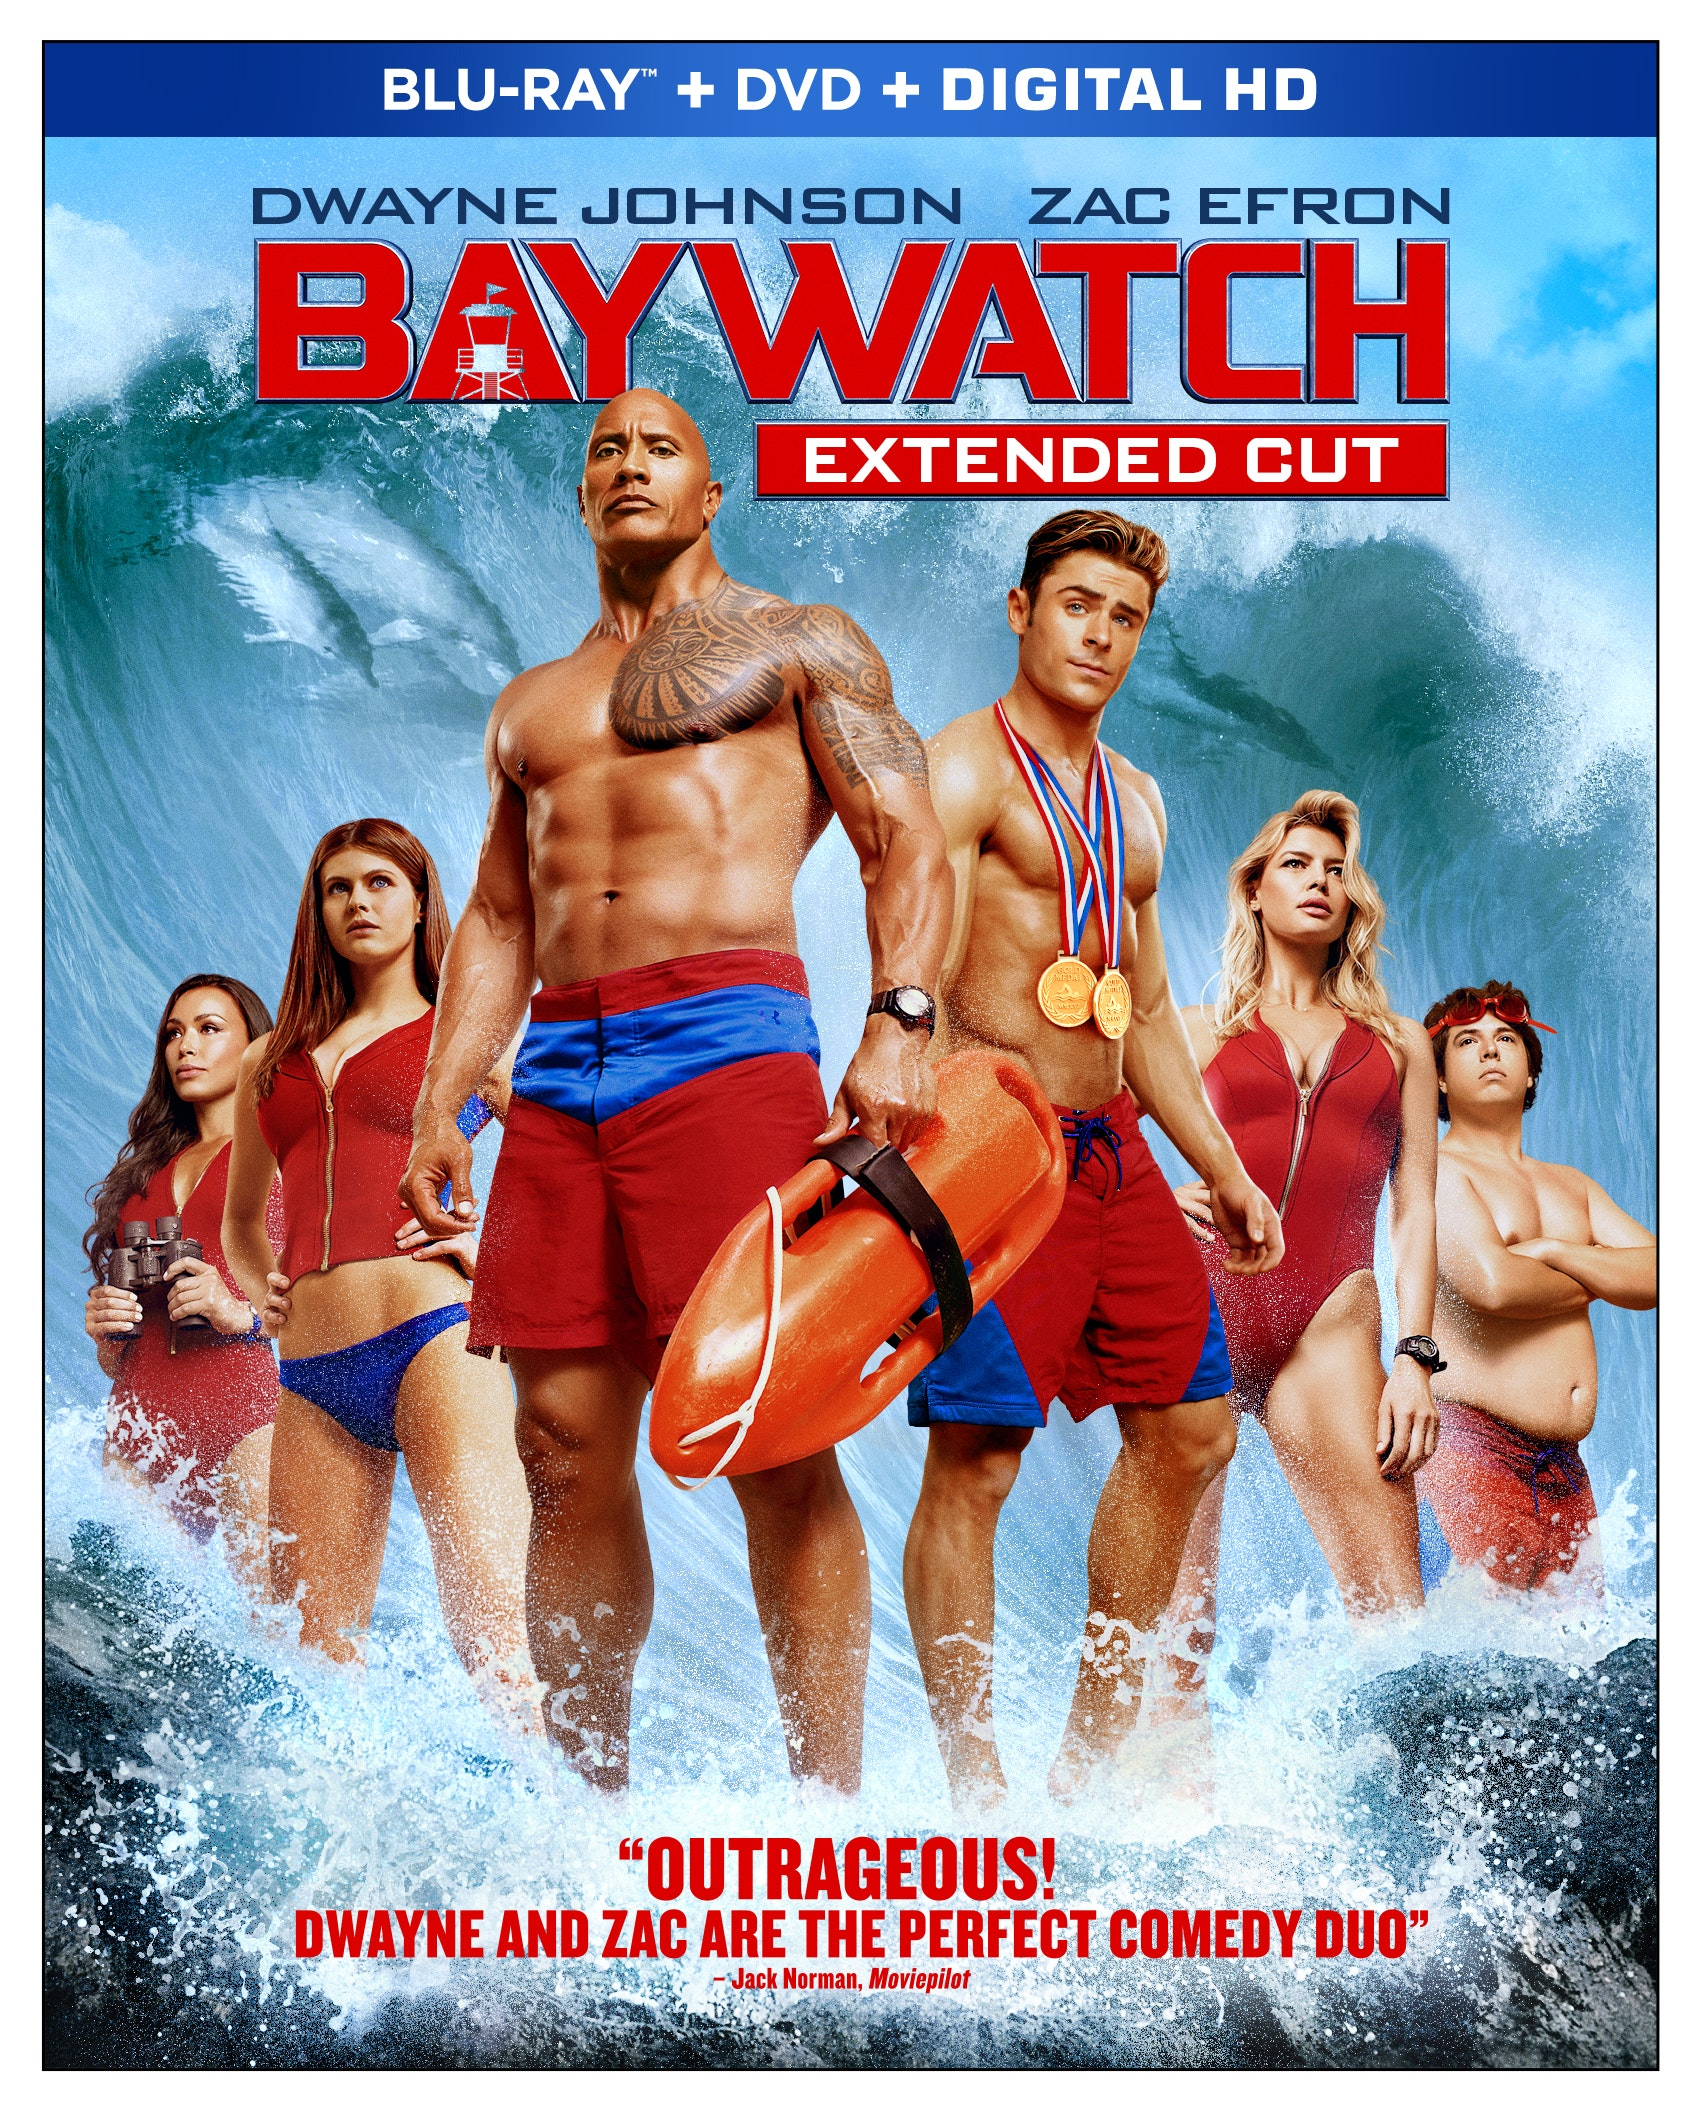 Baywatch Blu-ray Cover